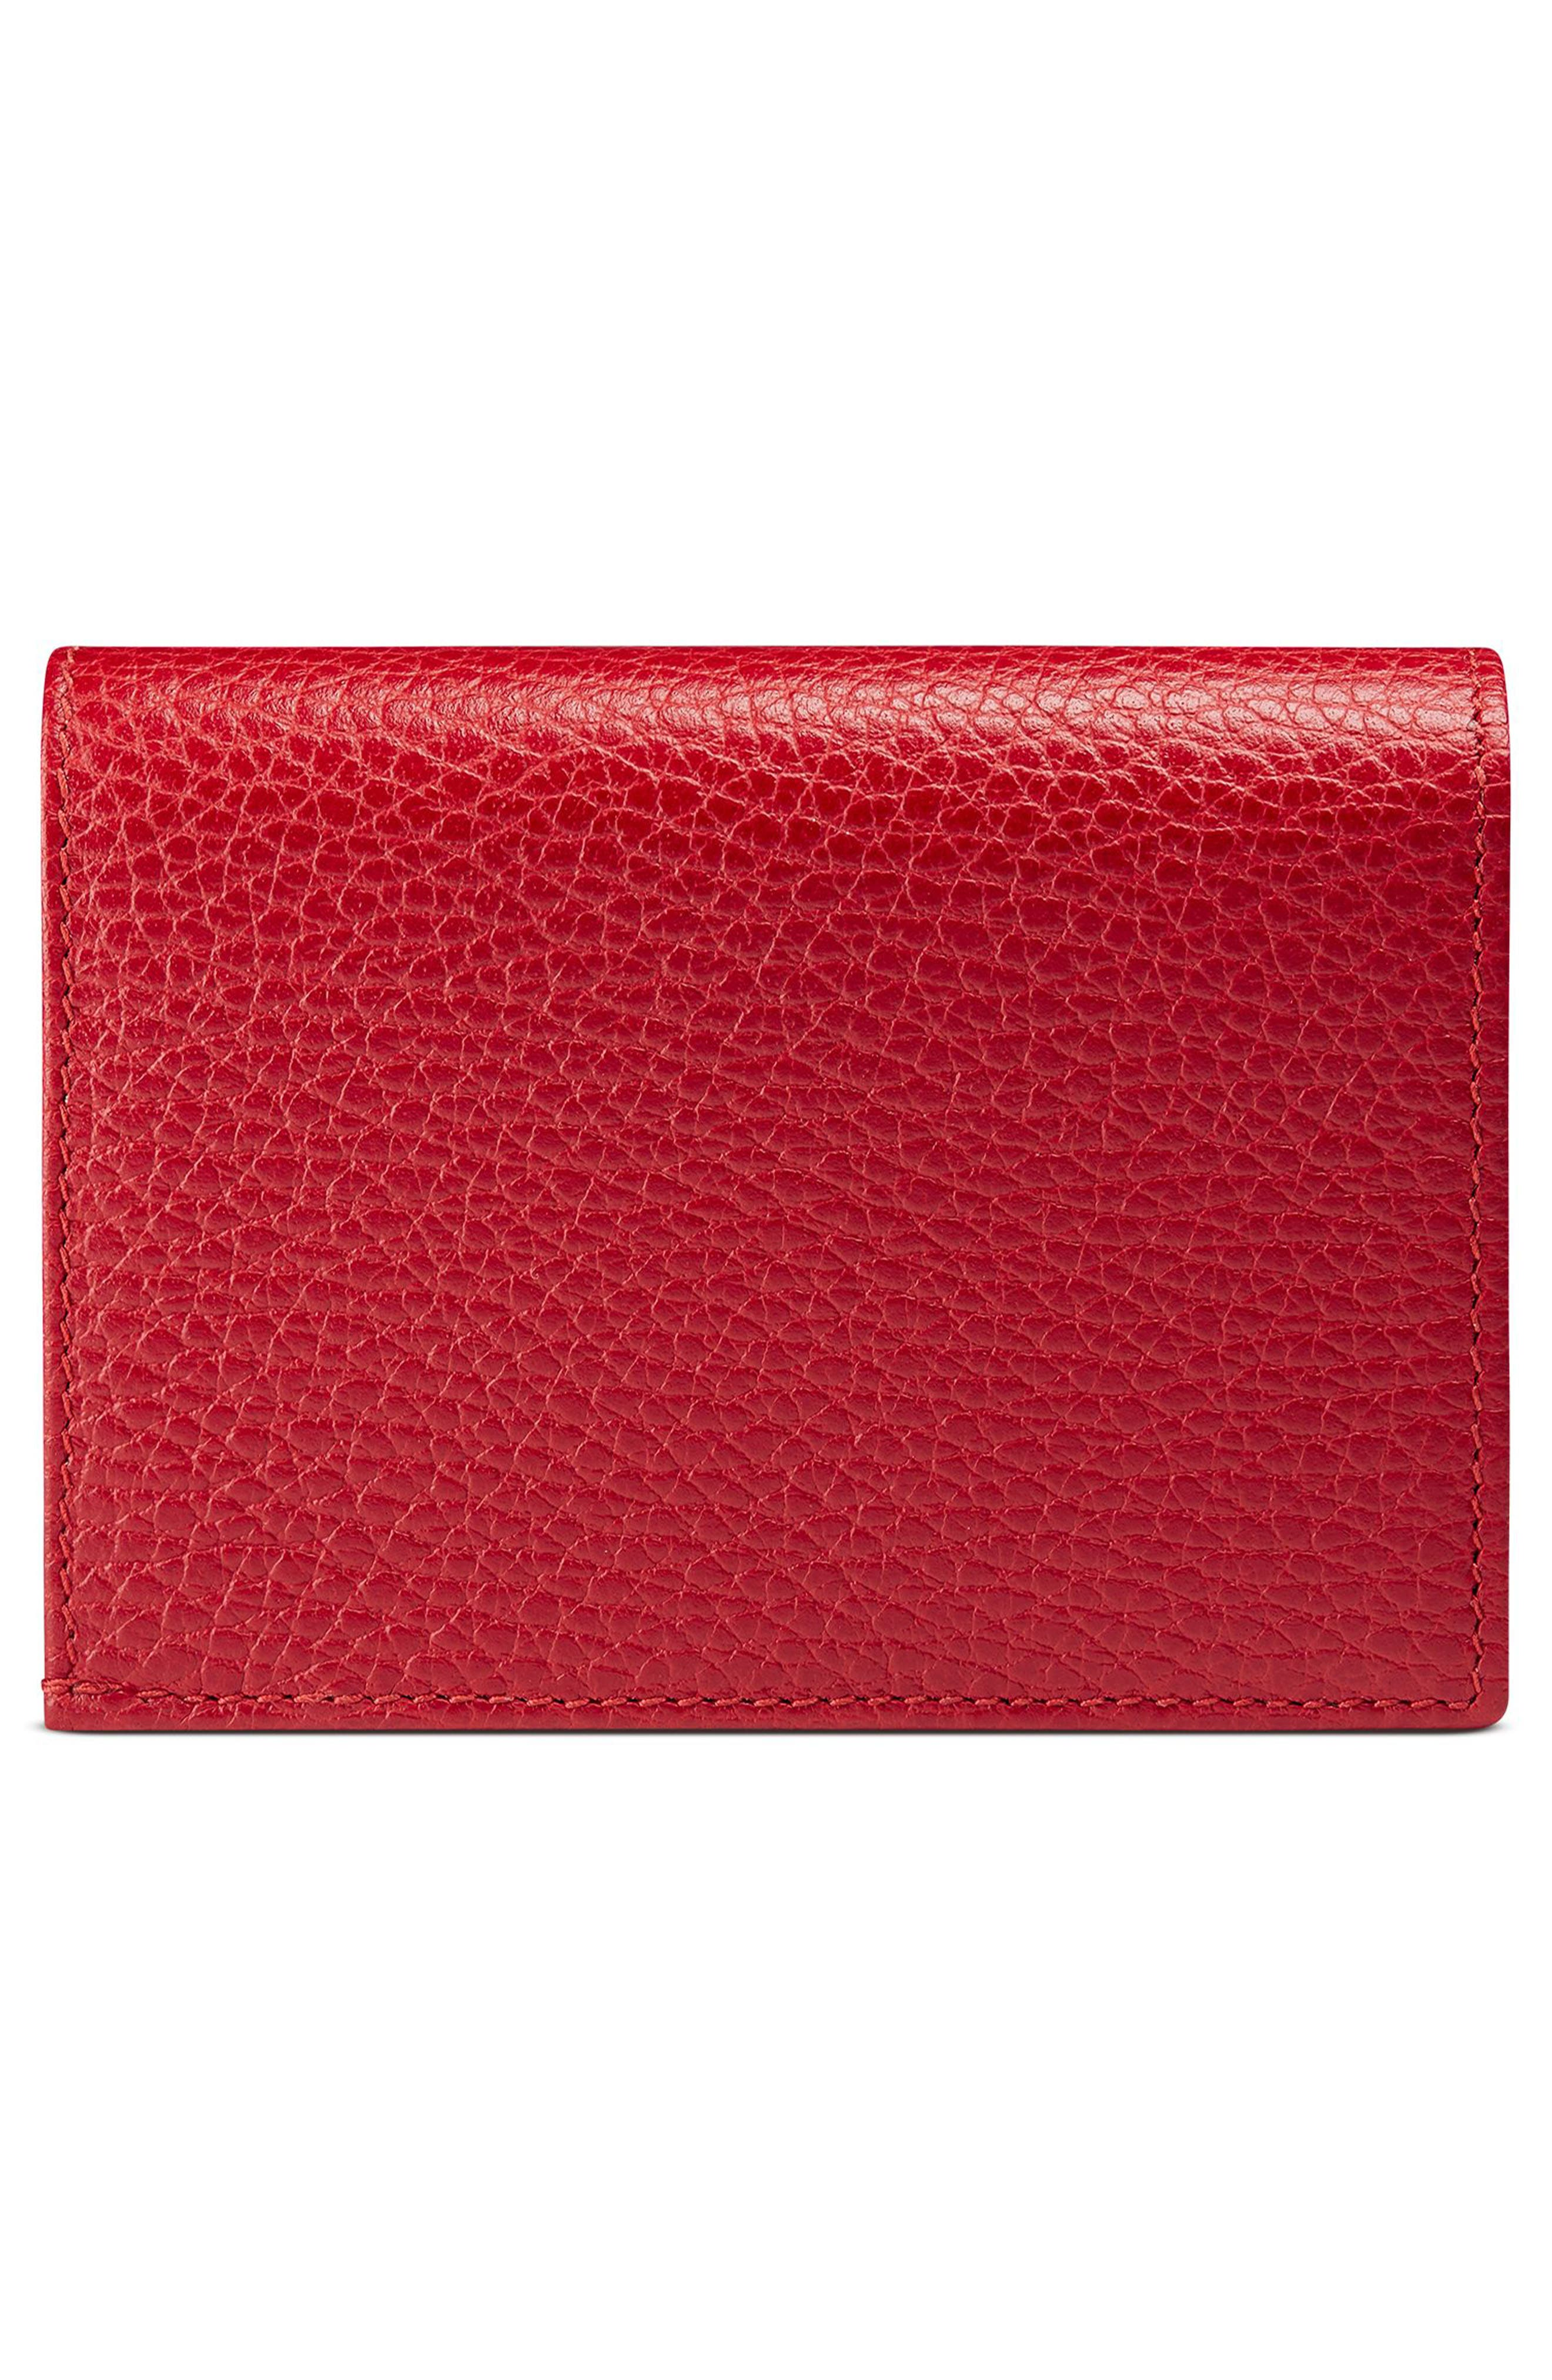 Petite Marmont Leather Card Case,                             Alternate thumbnail 4, color,                             Hibiscus Red